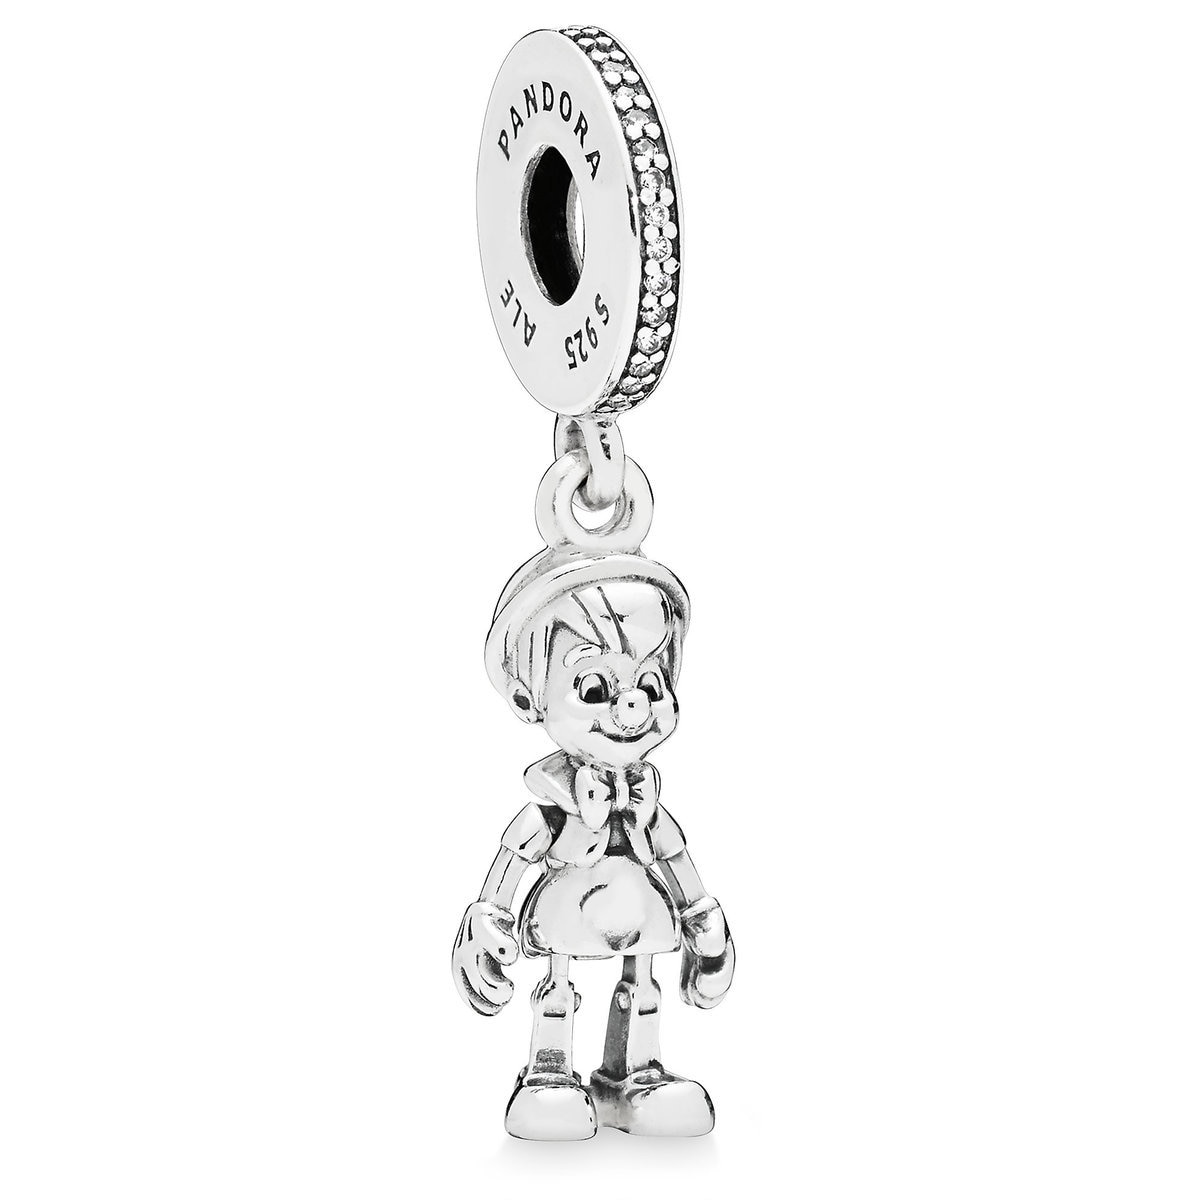 d4c07705b Product Image of Pinocchio Charm by Pandora Jewelry # 1